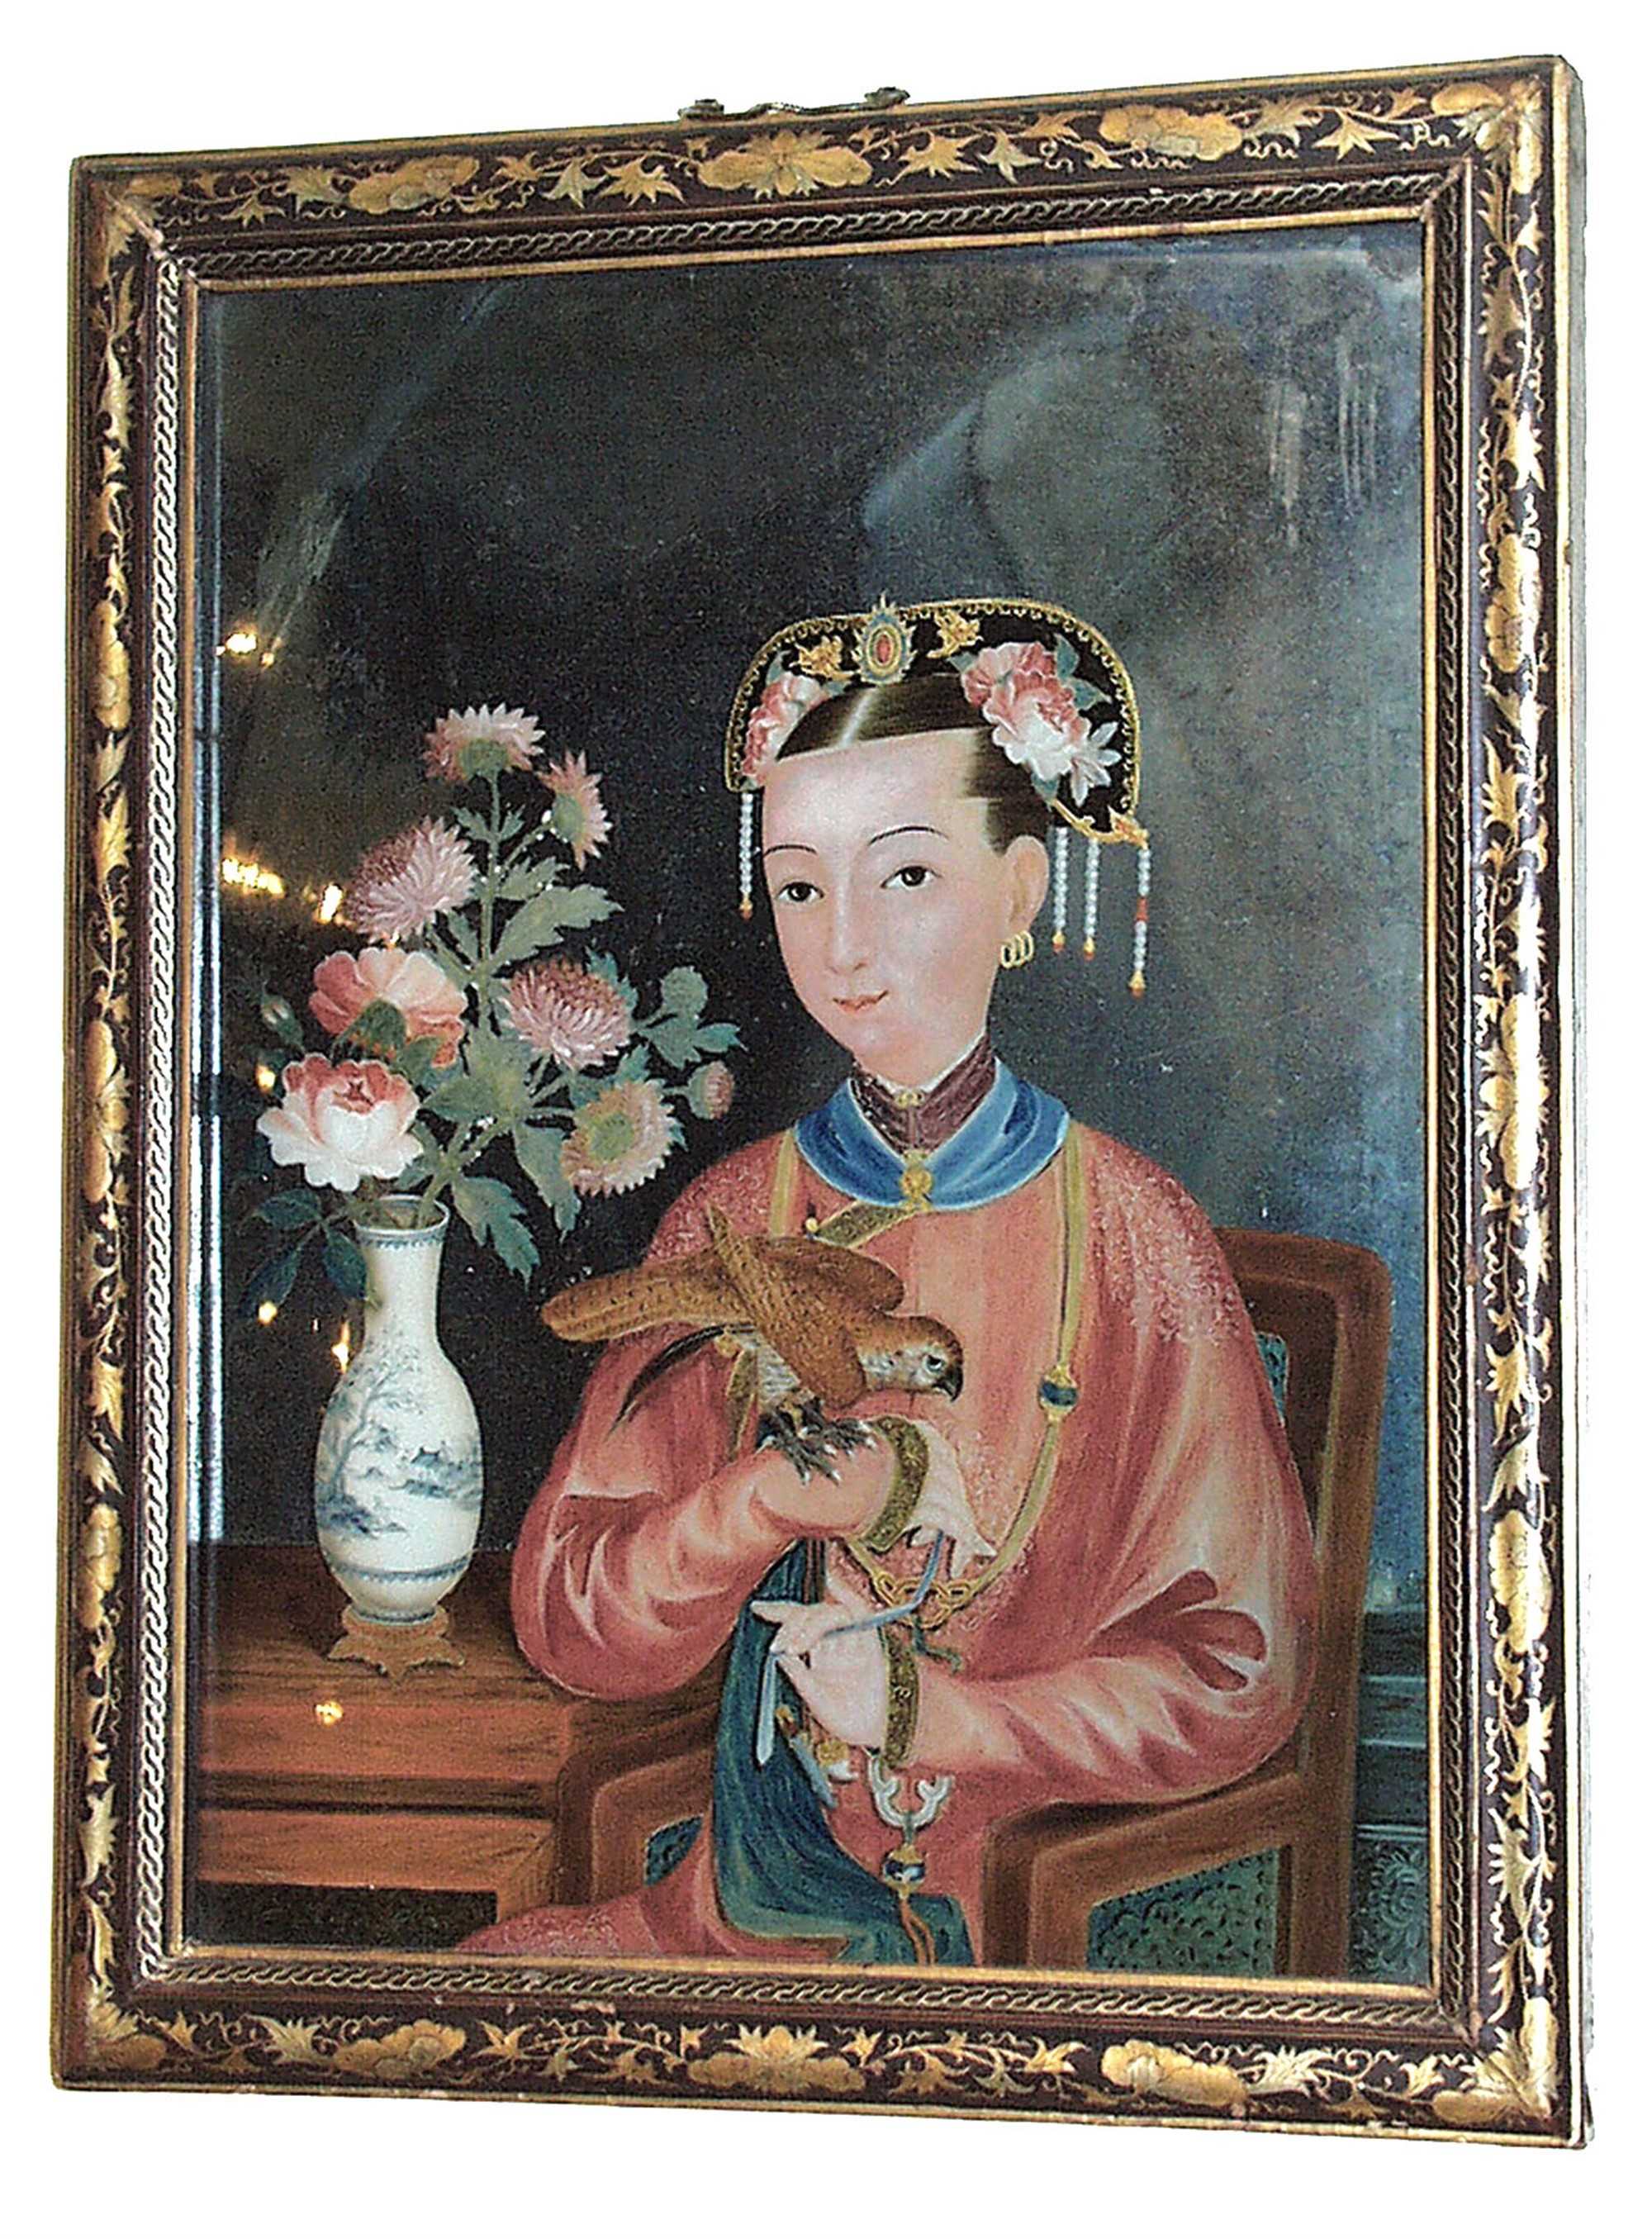 CHINESE REVERSE PAINTING ON GLASS OF A SEATED LADY AND HAWK